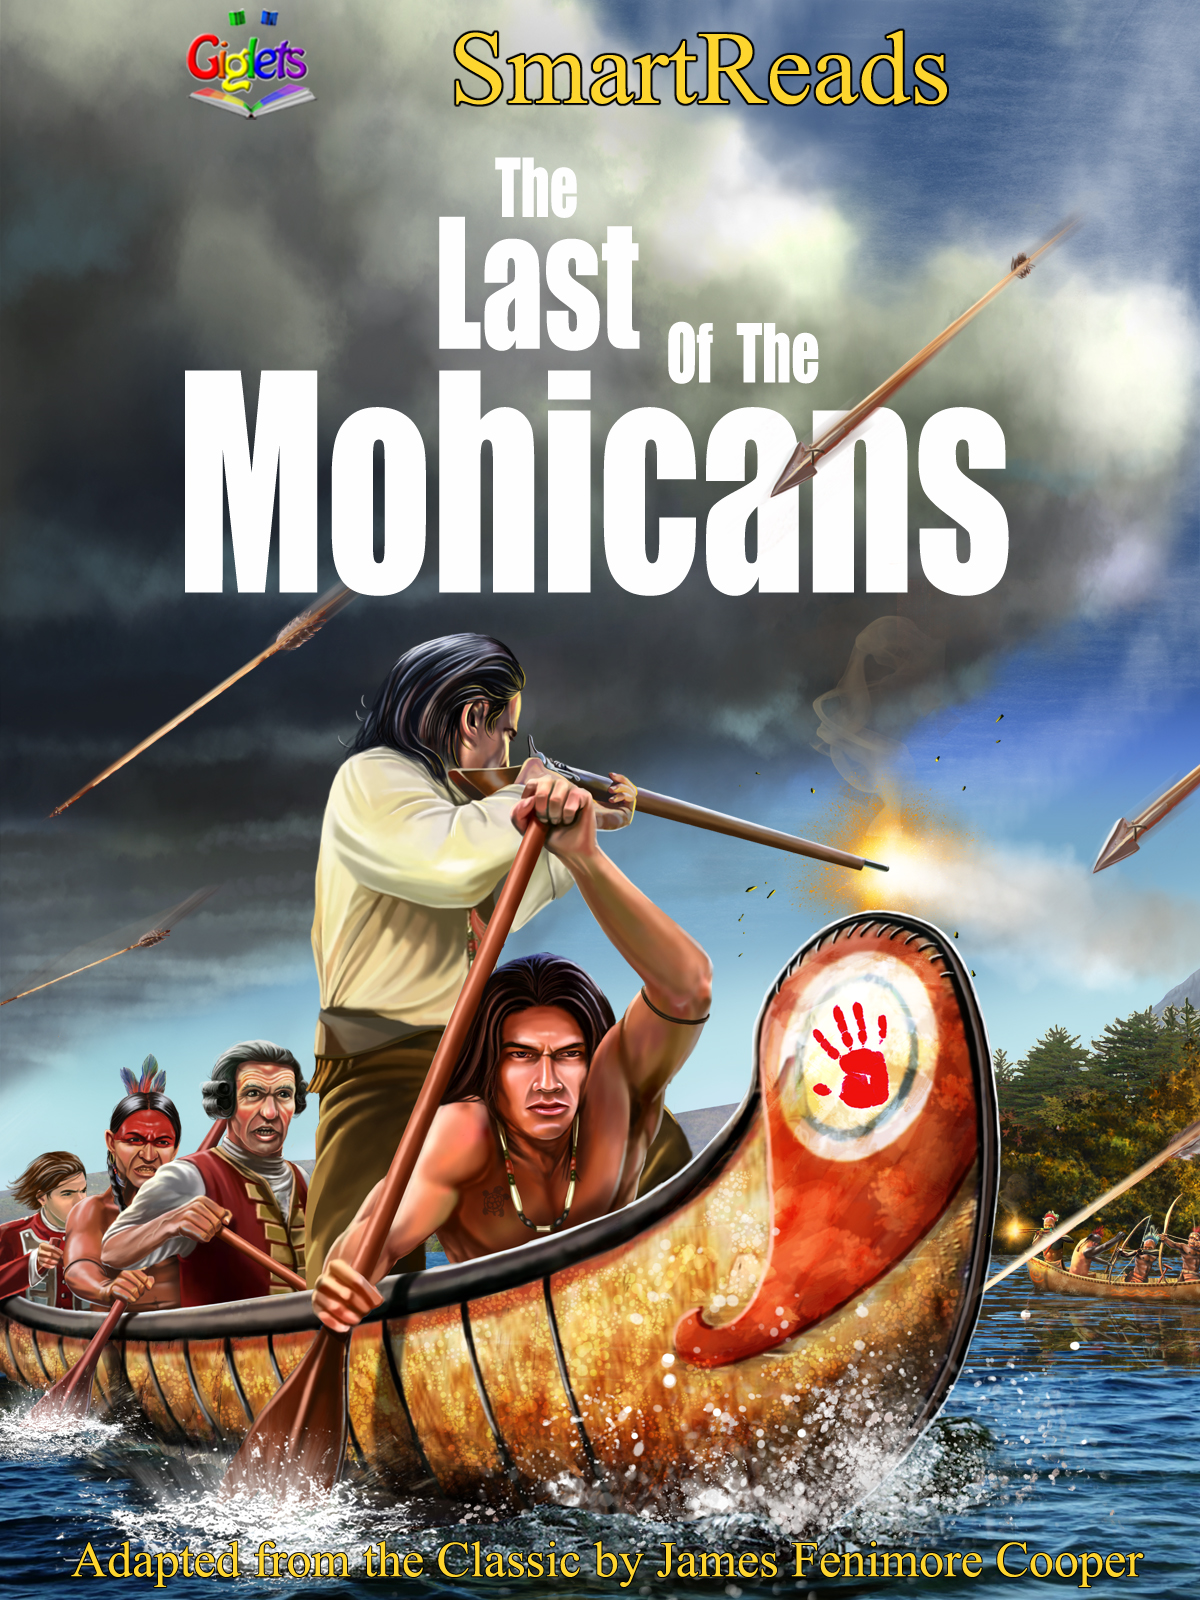 SmartReads The Last of the Mohicans By: Giglets